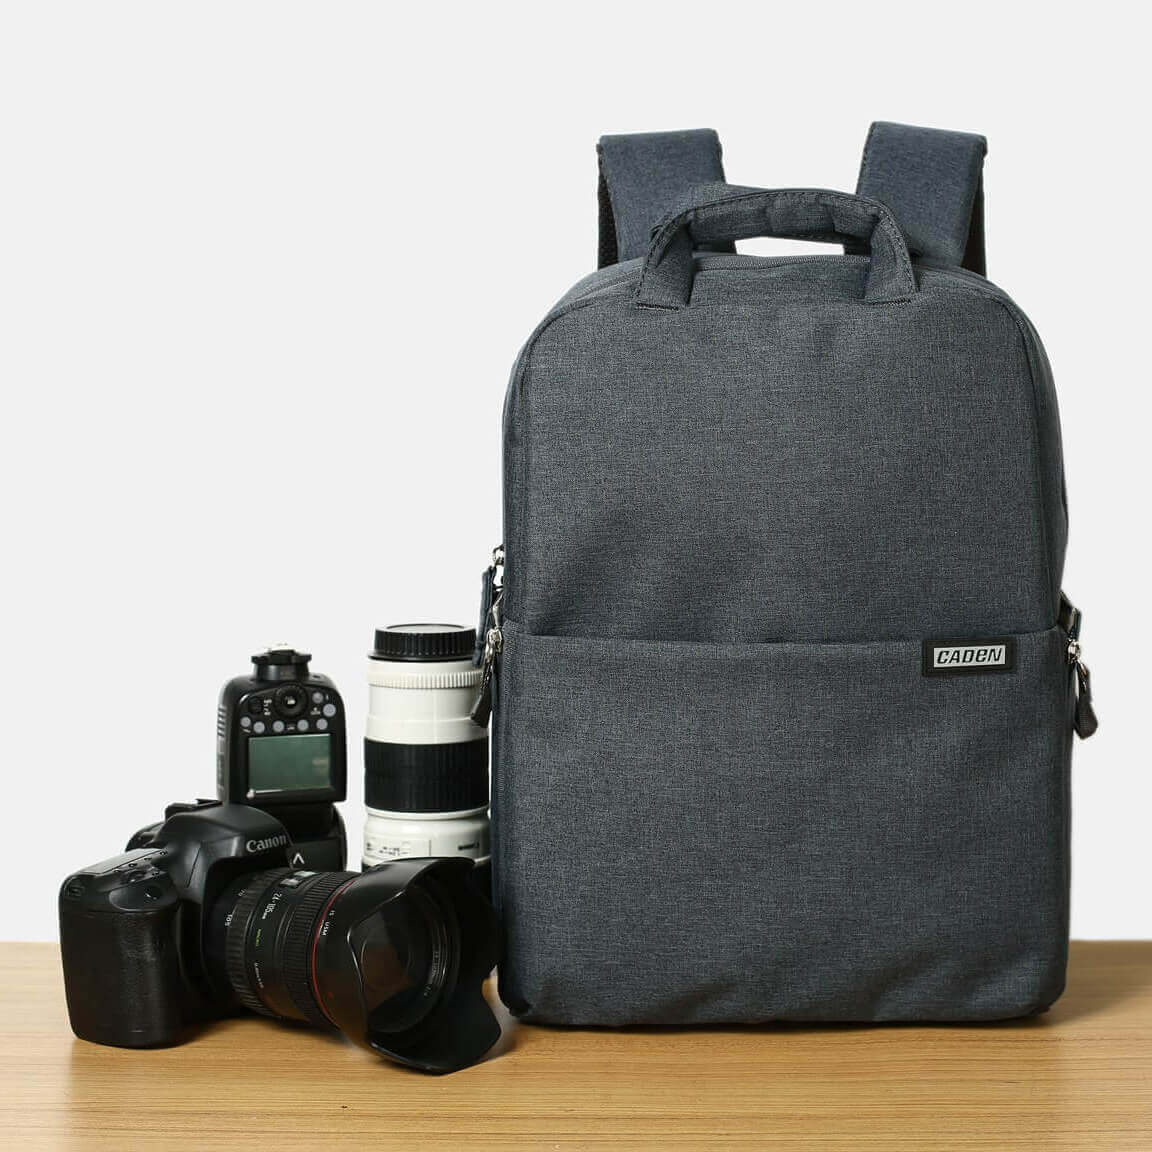 Fashion Style Canvas DSLR Camera Backpack Light Grey Rucksack Waterproof  For Sony Canon Nikon Olympus B6302 49115cab3941d